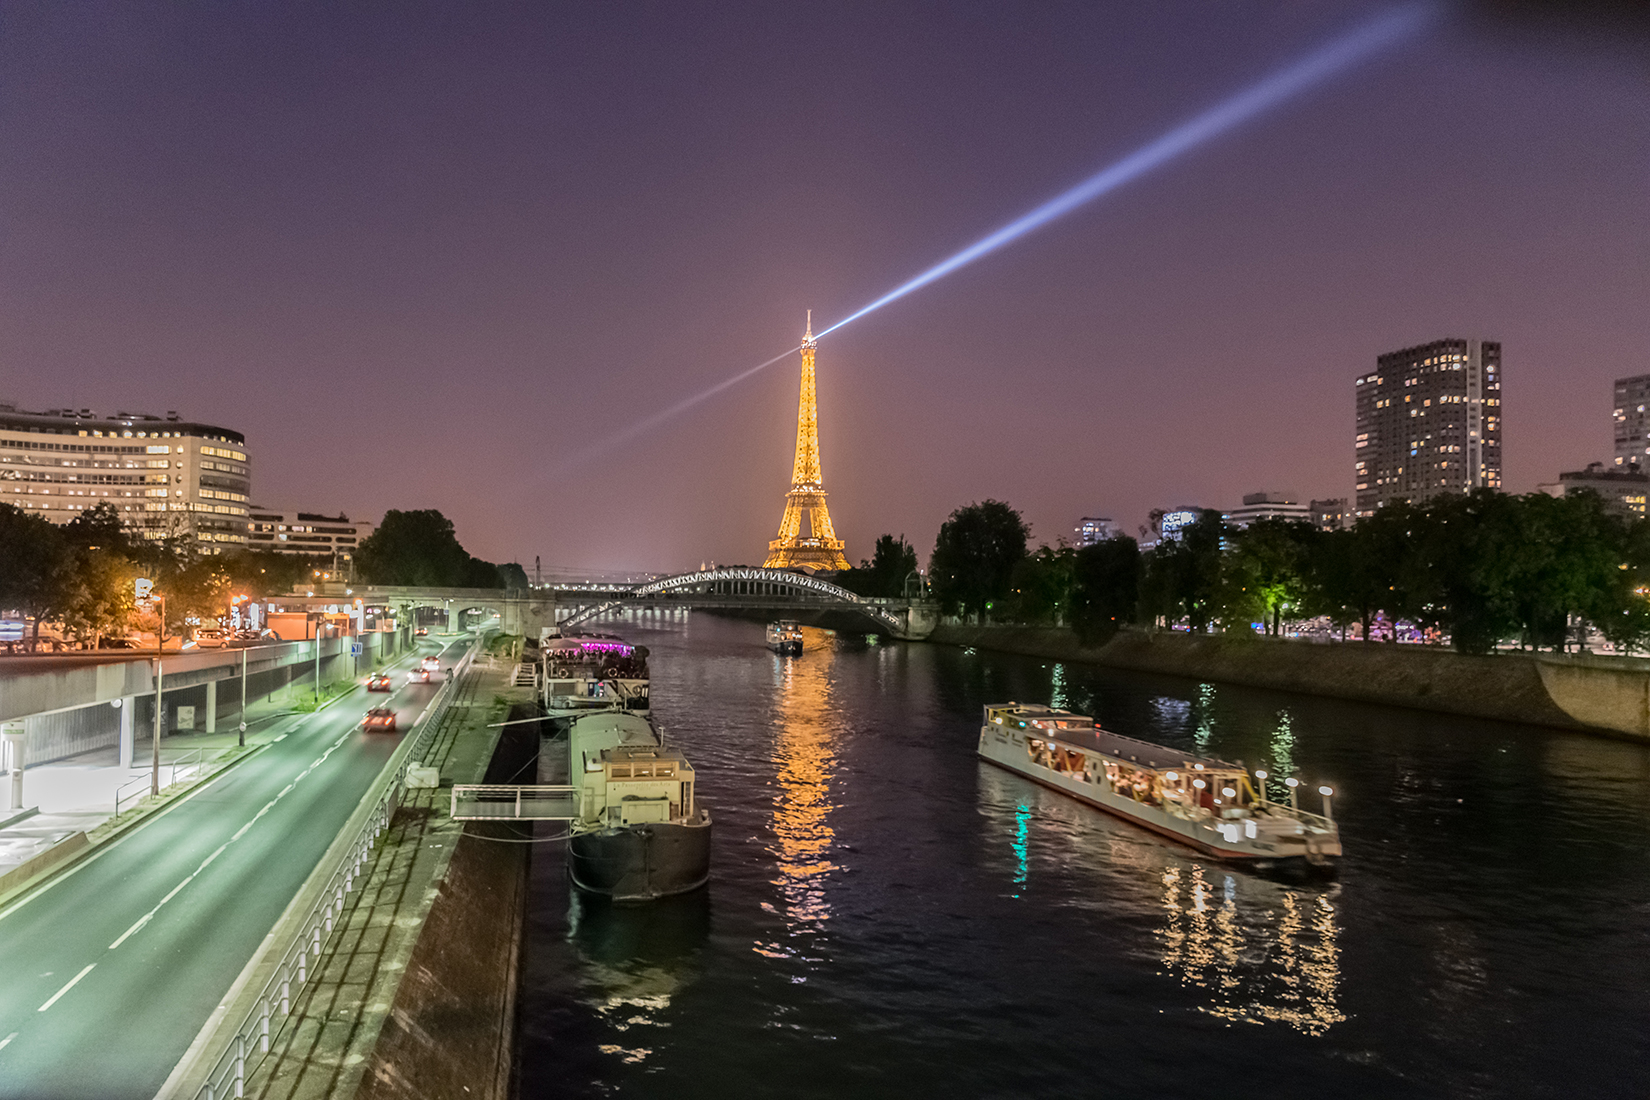 The Eiffel Tower illuminated at night. Here seen from the Pont du Garigliano bridge over the Seine in the west of the city